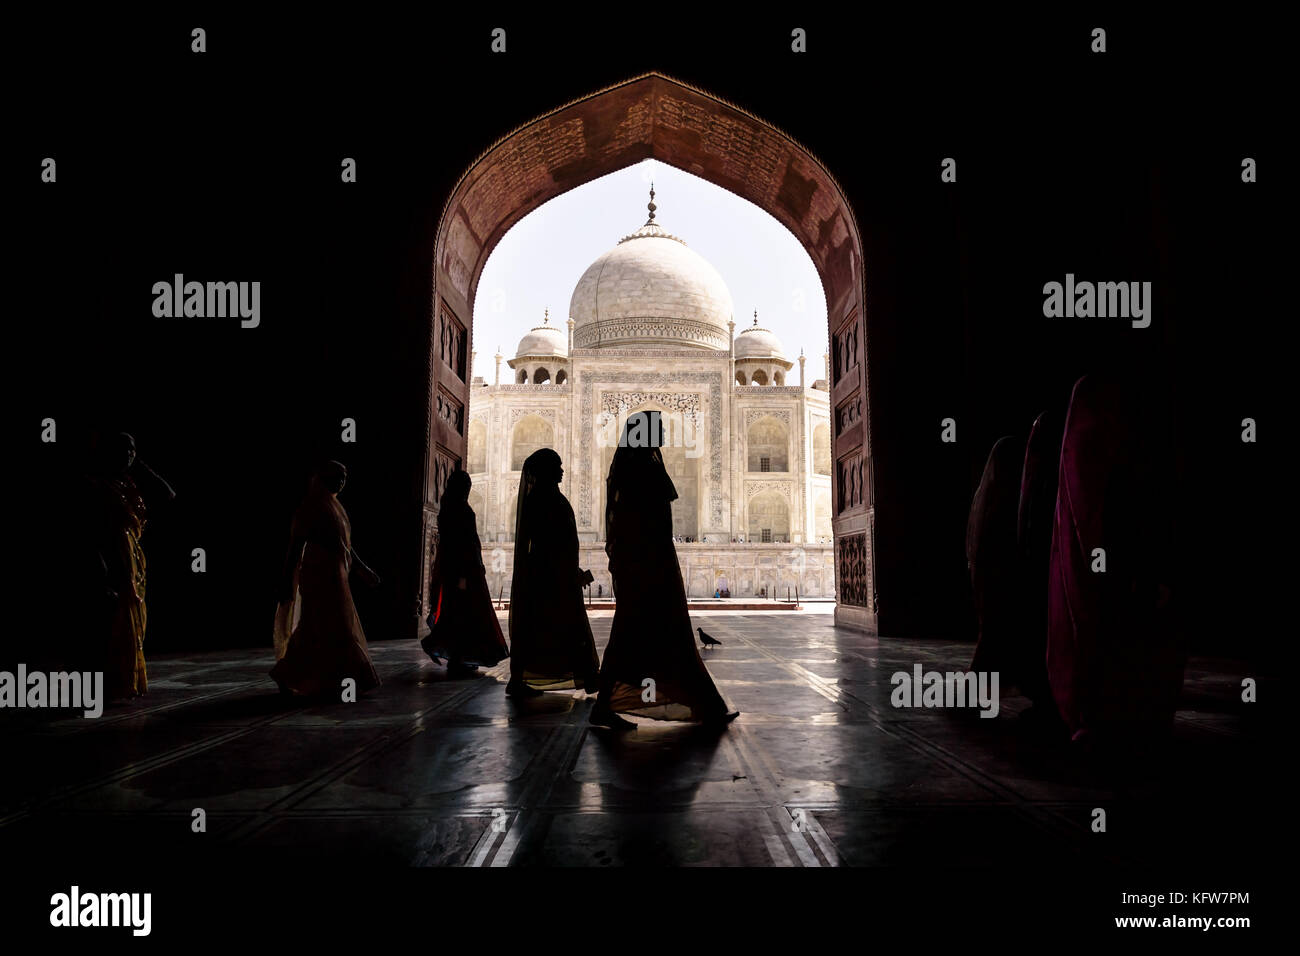 Argra, Taj Mahal, India - March 3 2012: Women in traditional saris passing arch in Taj Mahal in Agra, Uttar Pradesh, - Stock Image